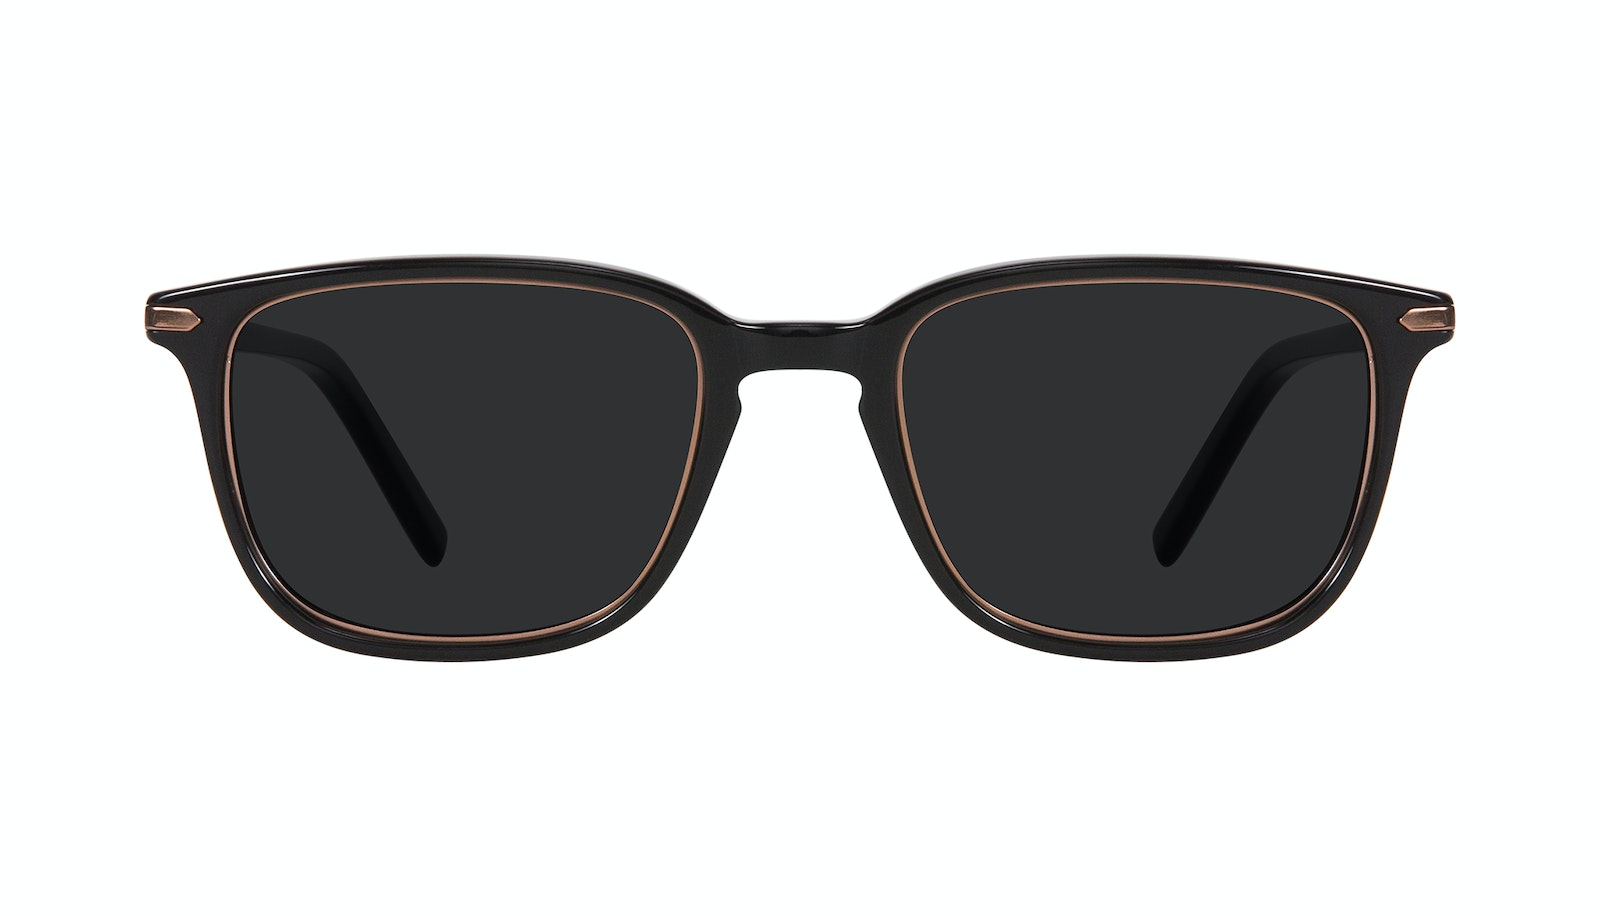 Affordable Fashion Glasses Square Sunglasses Men Sharp Lux Black Copper